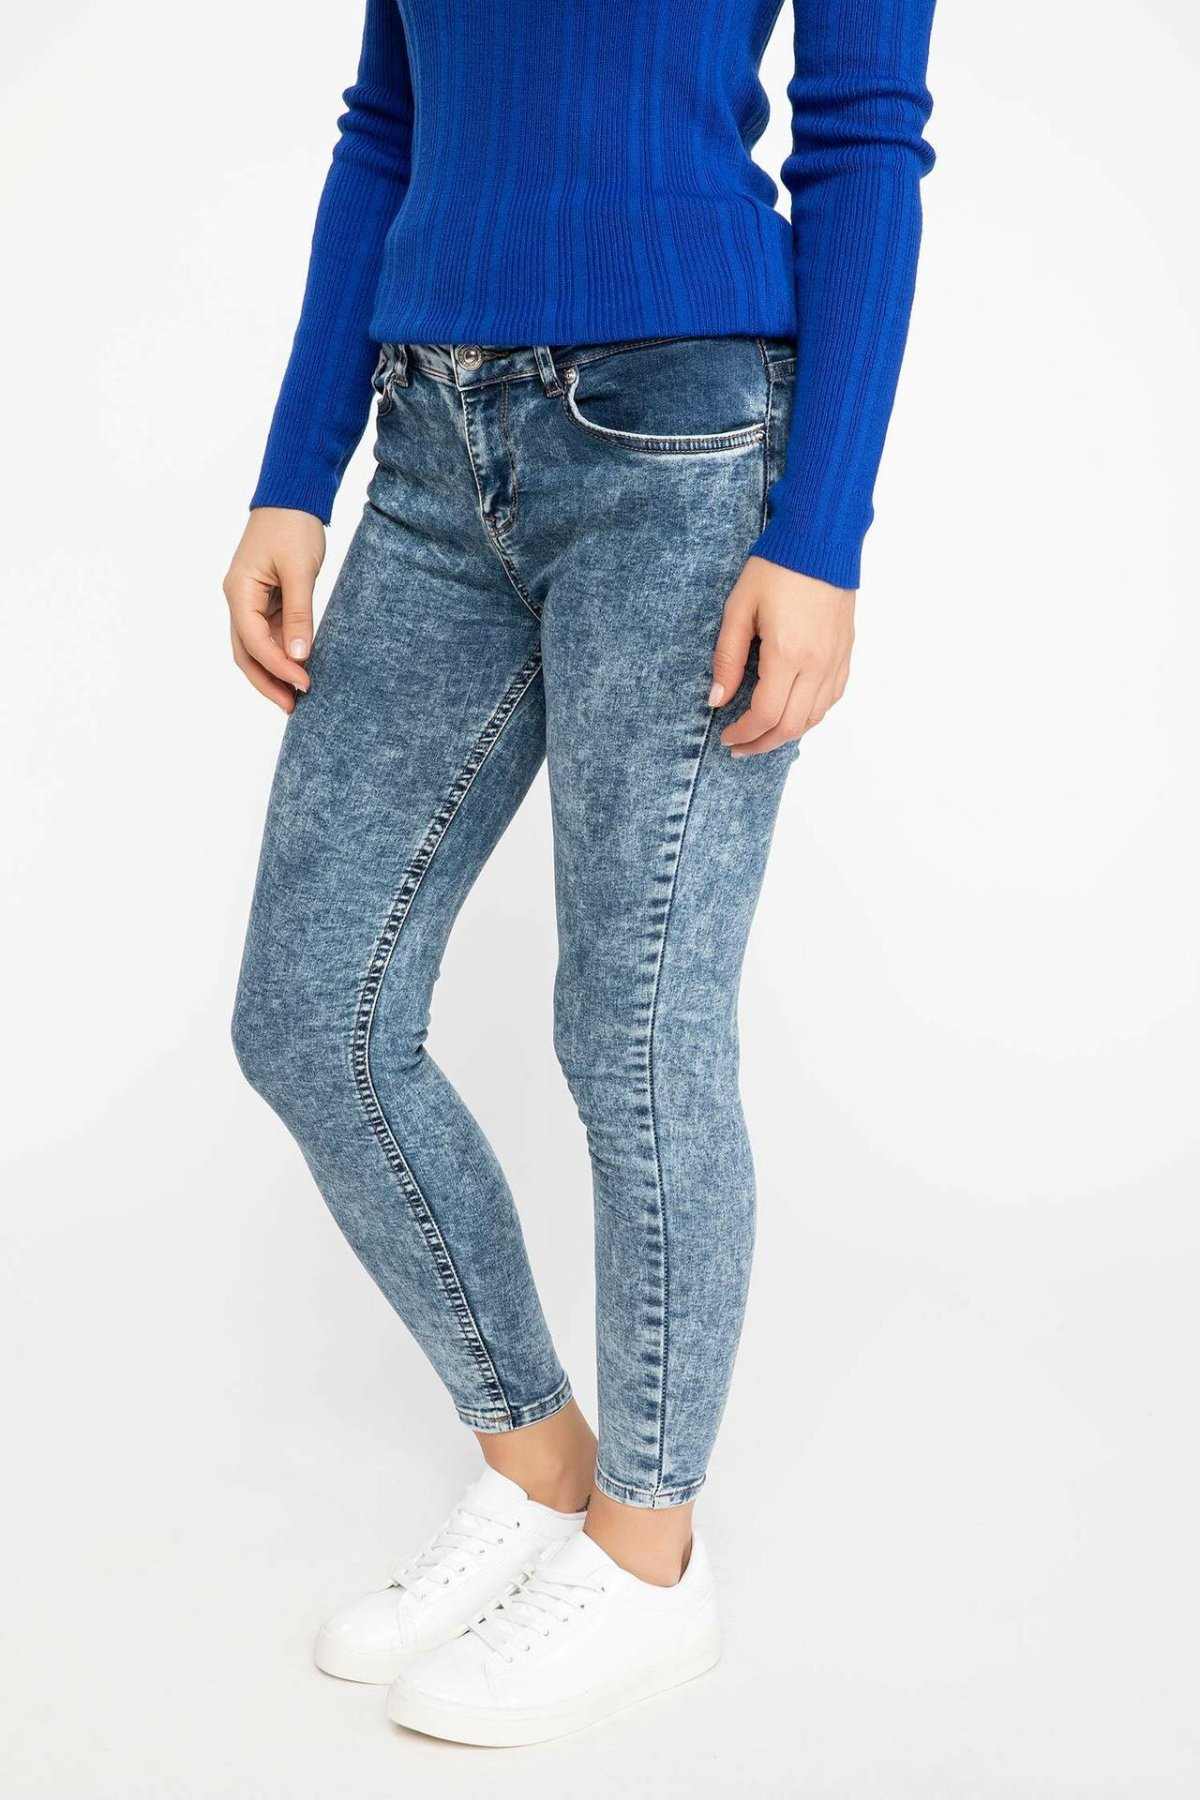 DeFacto Blue Lady Solid Skinny Jeans Denim Simple Mid-waist Denim Stretch Casual Nine Minutes Pencil Trousers-J5685AZ18AU-J5685AZ18AU